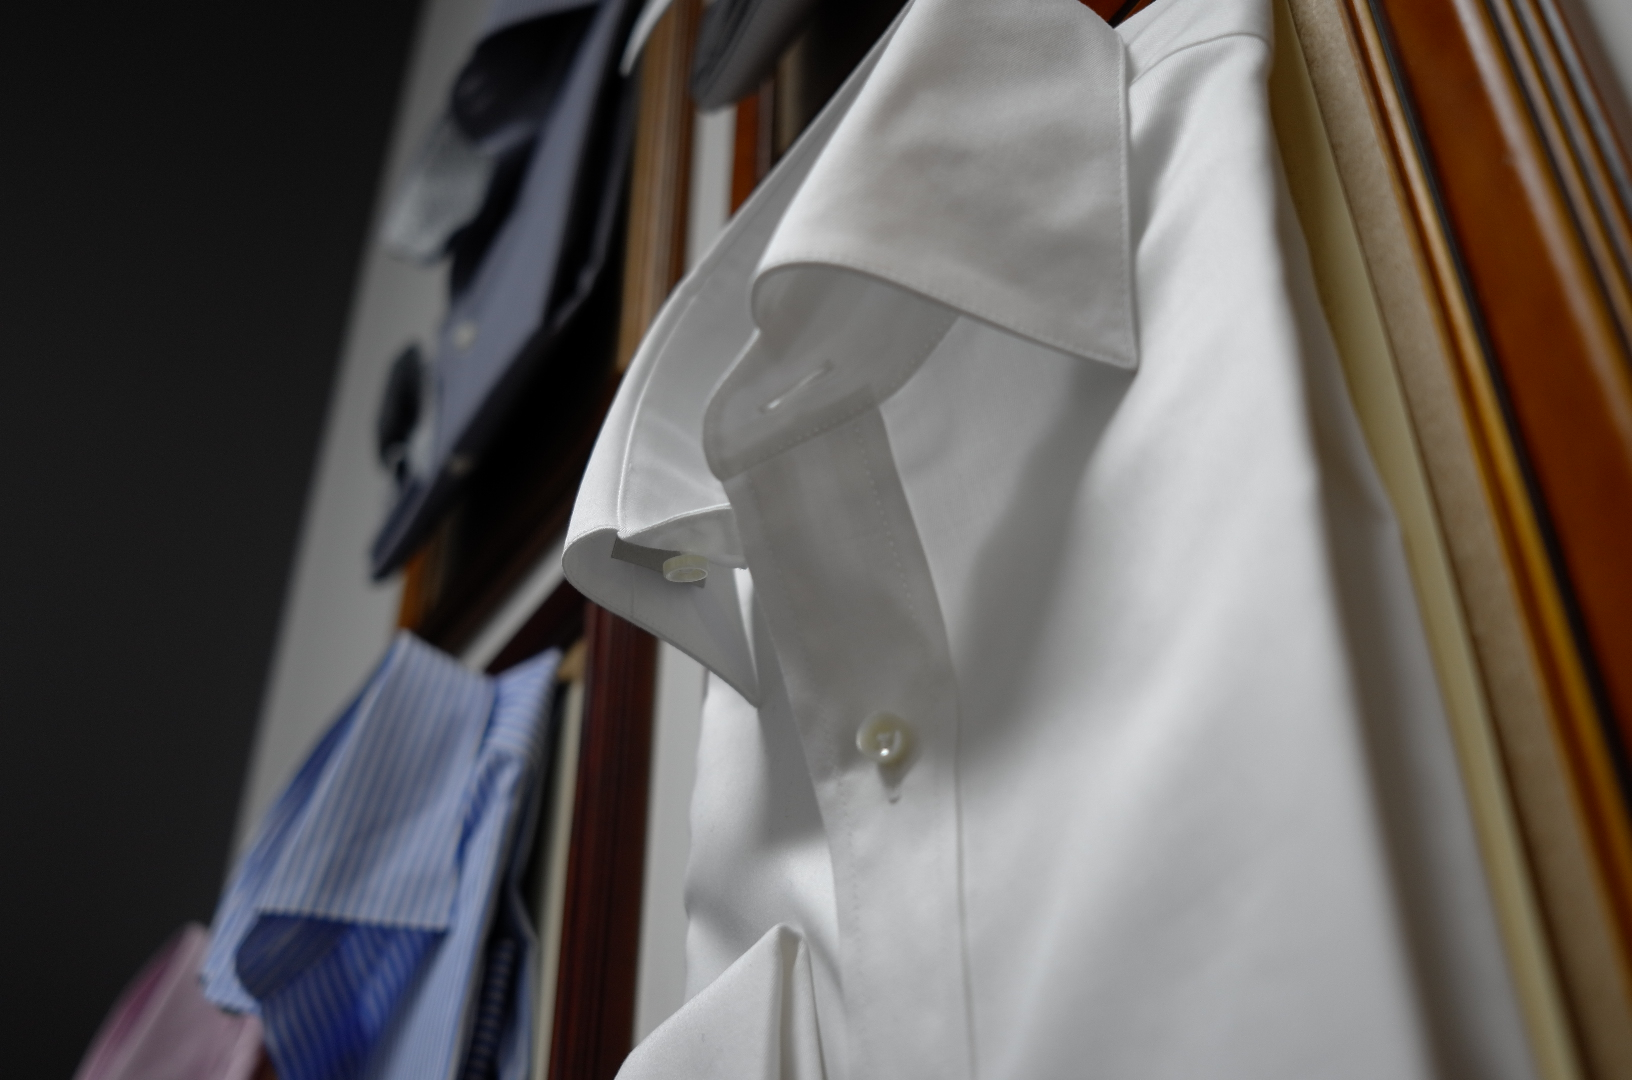 Our Wall of Shirts, makes picking collars and styling easier